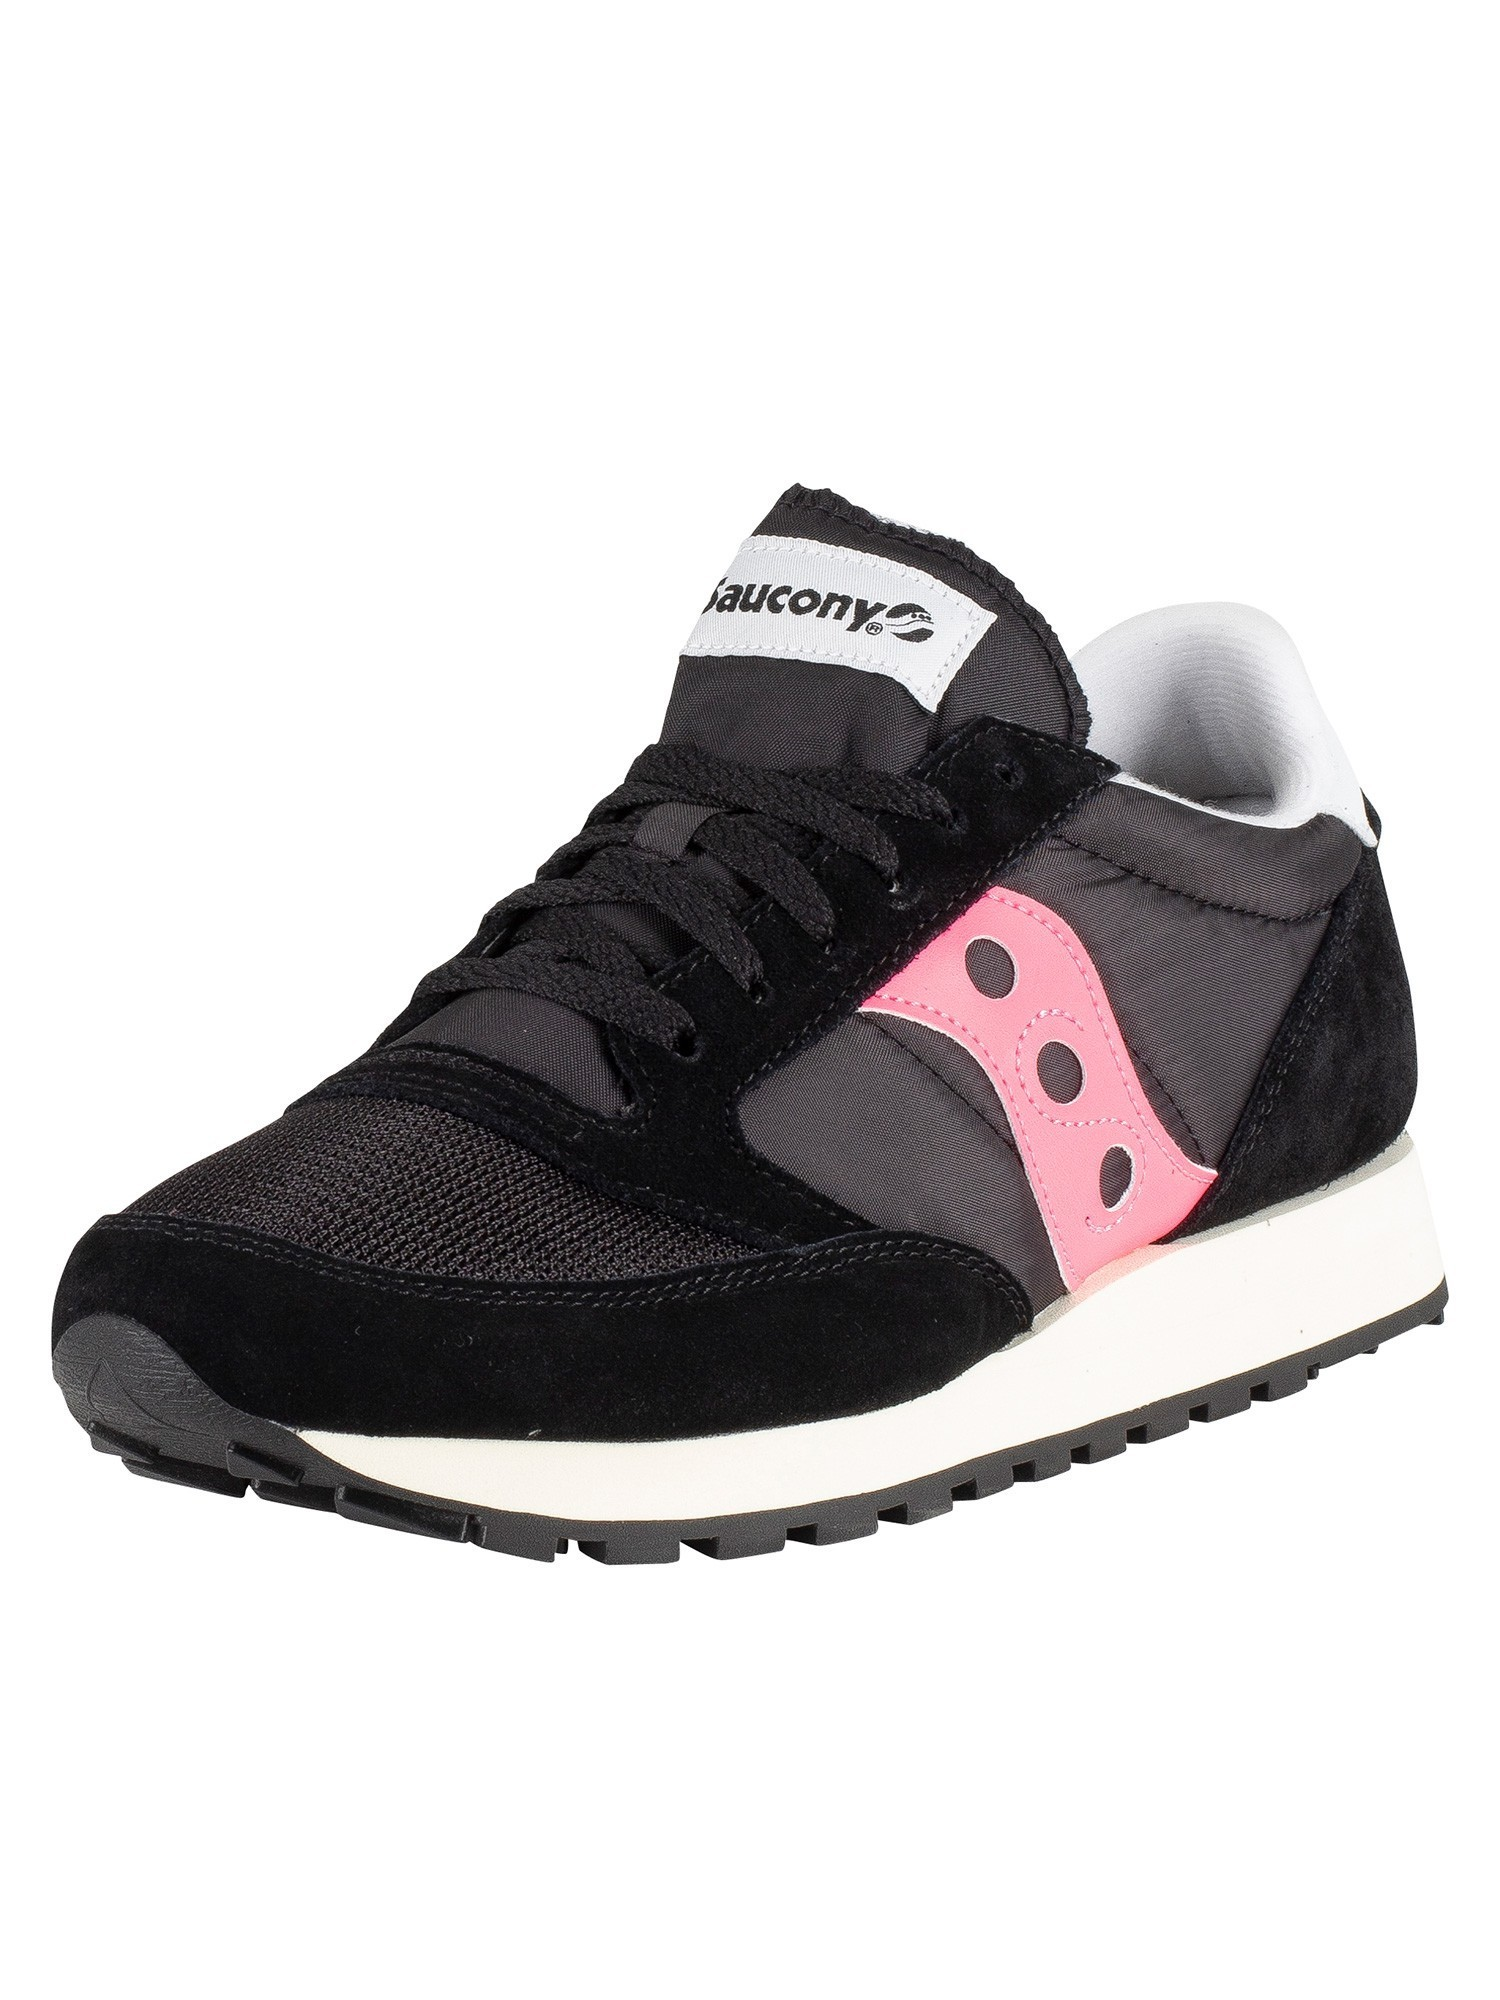 competitive price 27f74 11b41 Saucony Jazz Original Vintage Trainers - Black/Pink